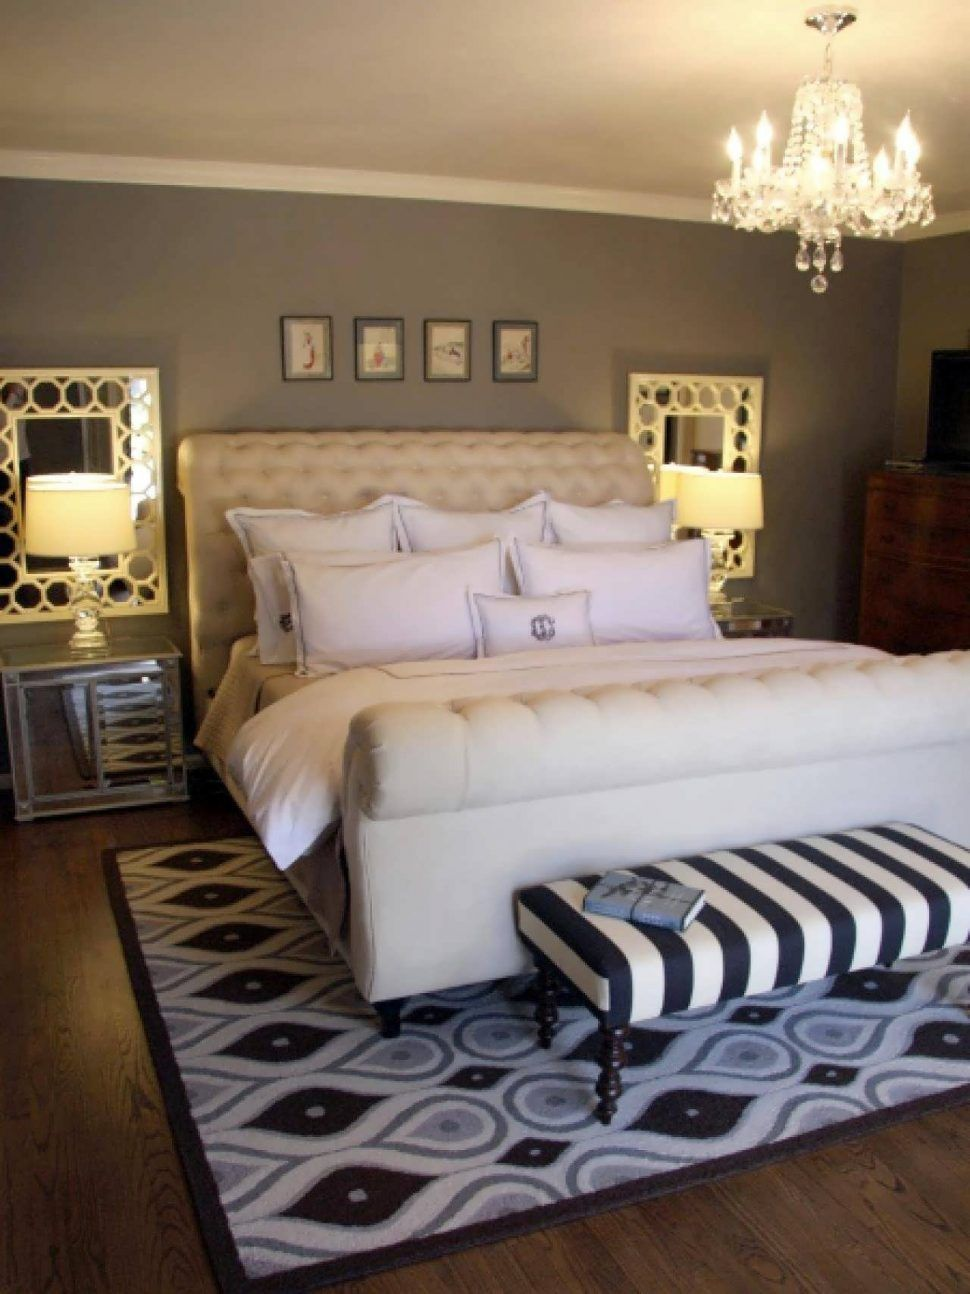 30 Inspiration Picture Of Couple Bedroom Ideas Janicereyesphotography Com Small Master Bedroom Remodel Bedroom Master Bedrooms Decor